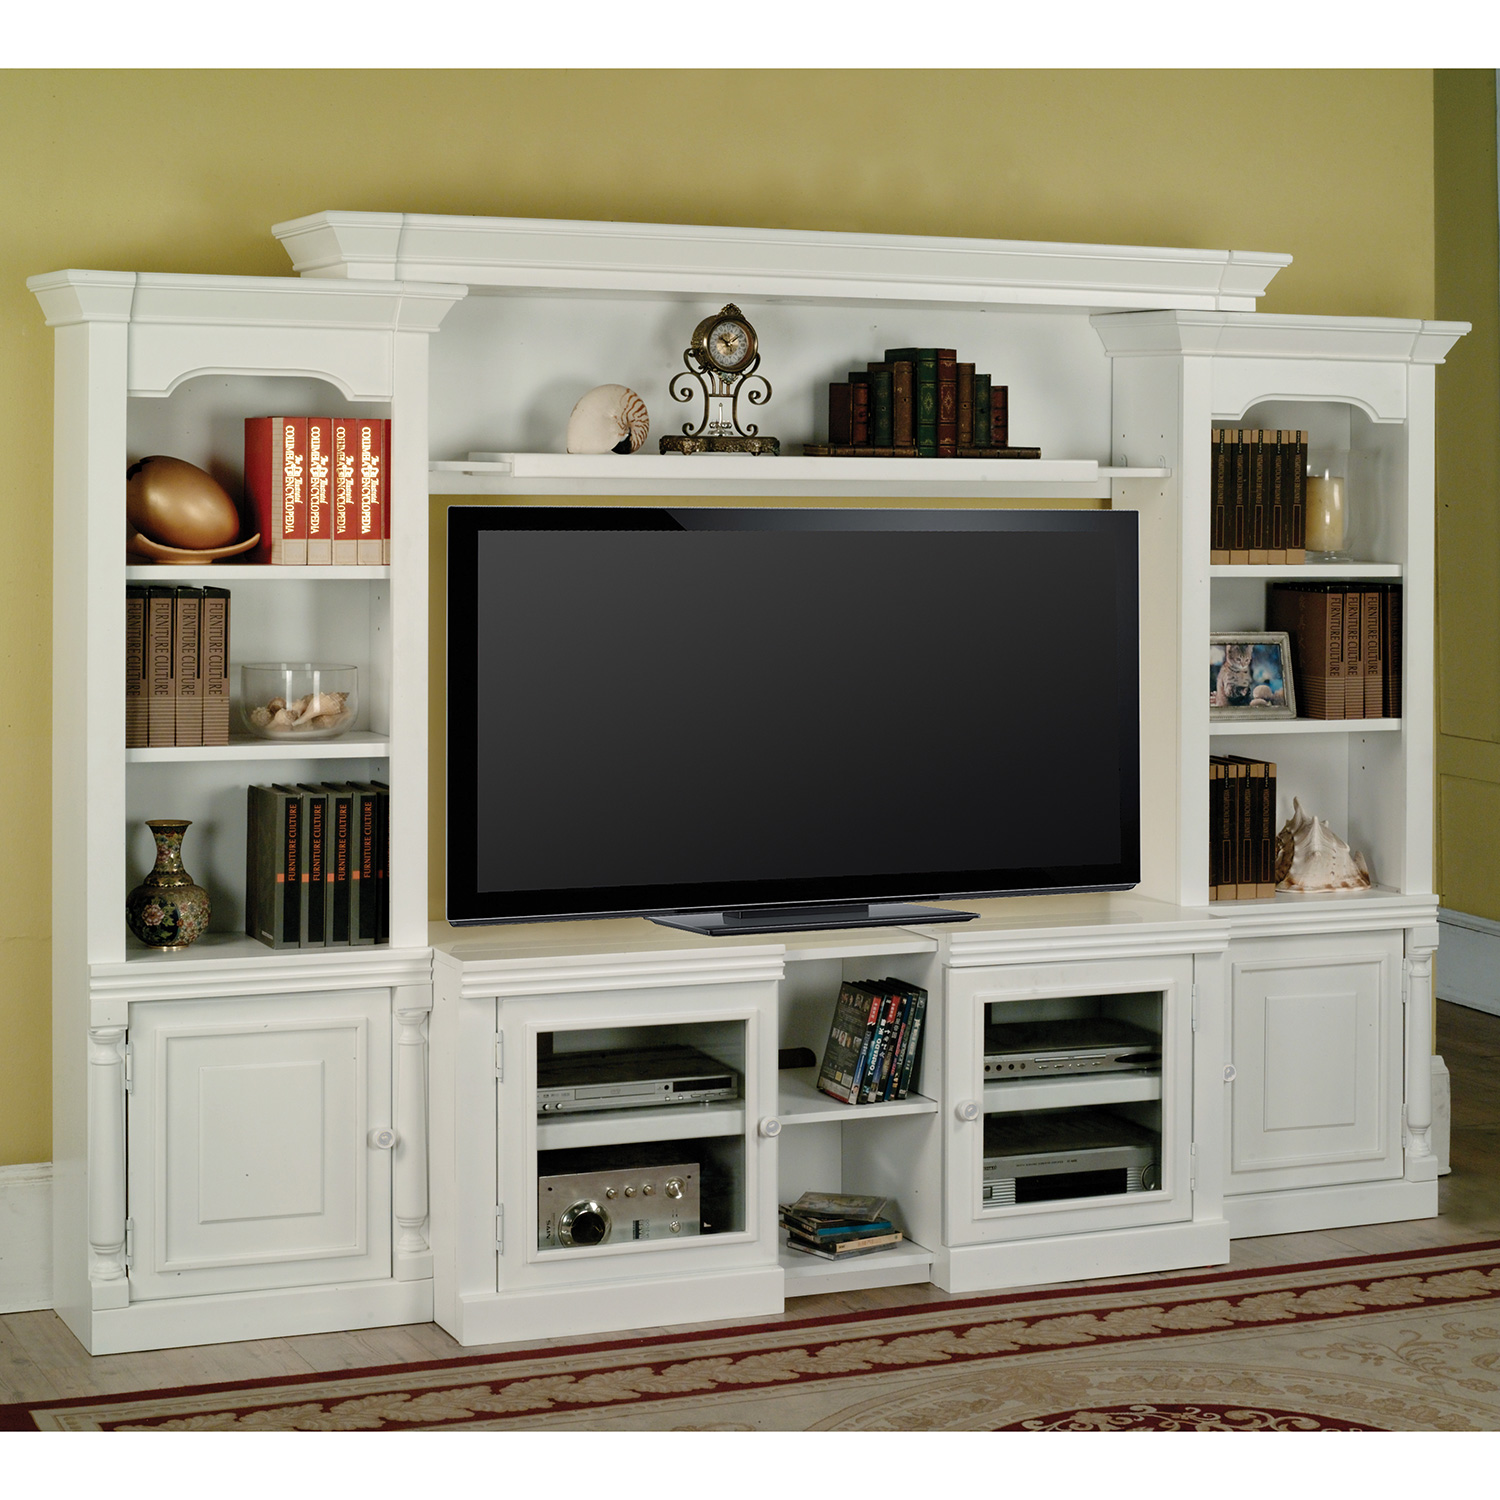 Home Theater Wall Units & Entertainment Centers at Dynamic Home Decor